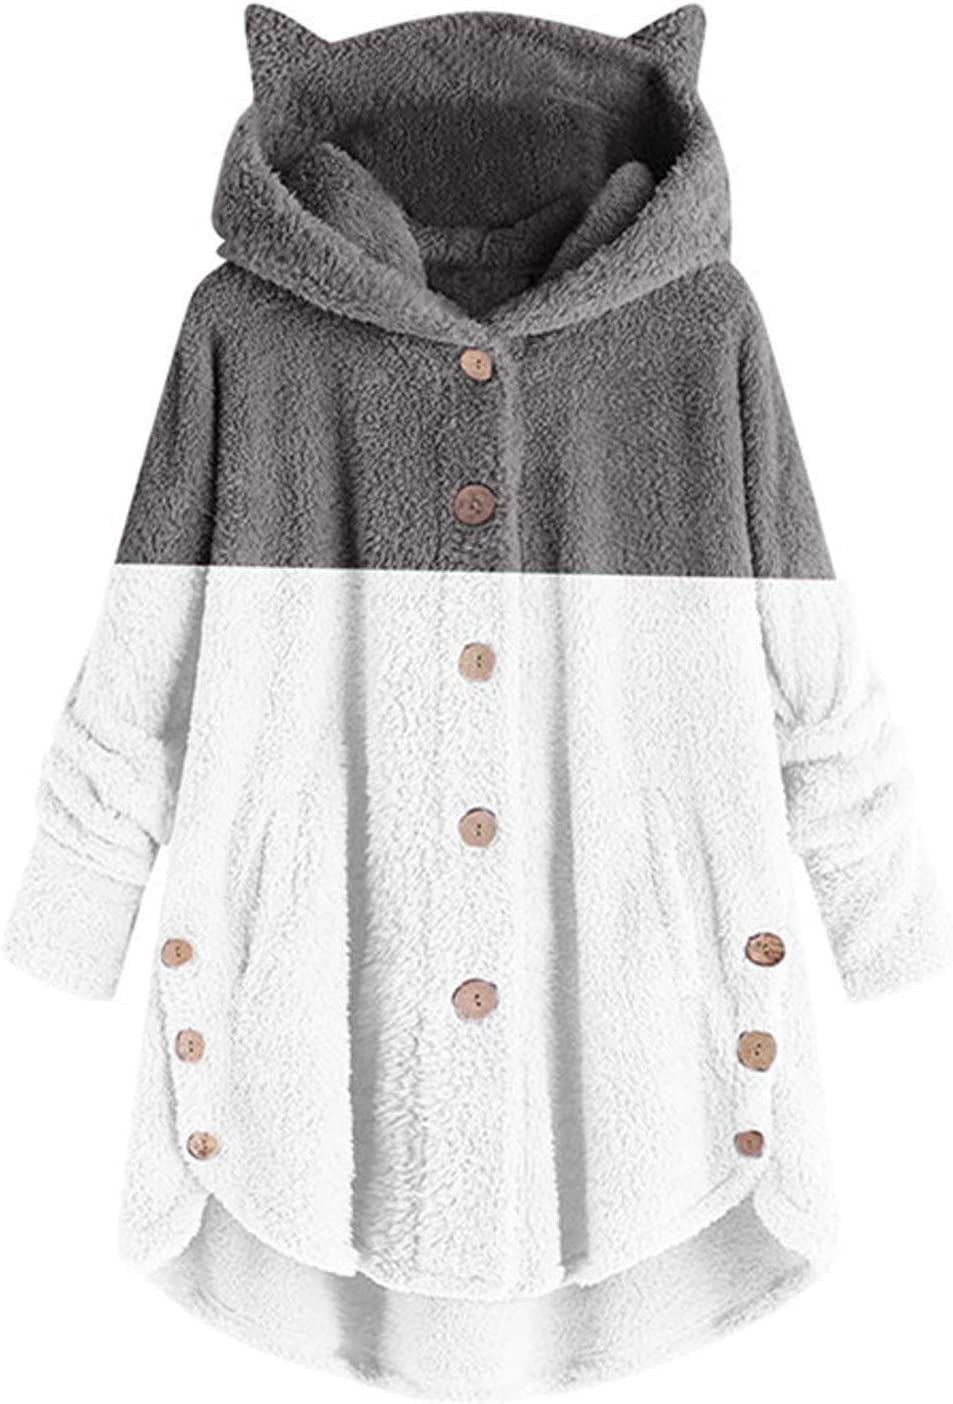 Smileyth Women Winter Fuzzy 100% quality New life warranty Warm Buttons Coat Pocket Color Block